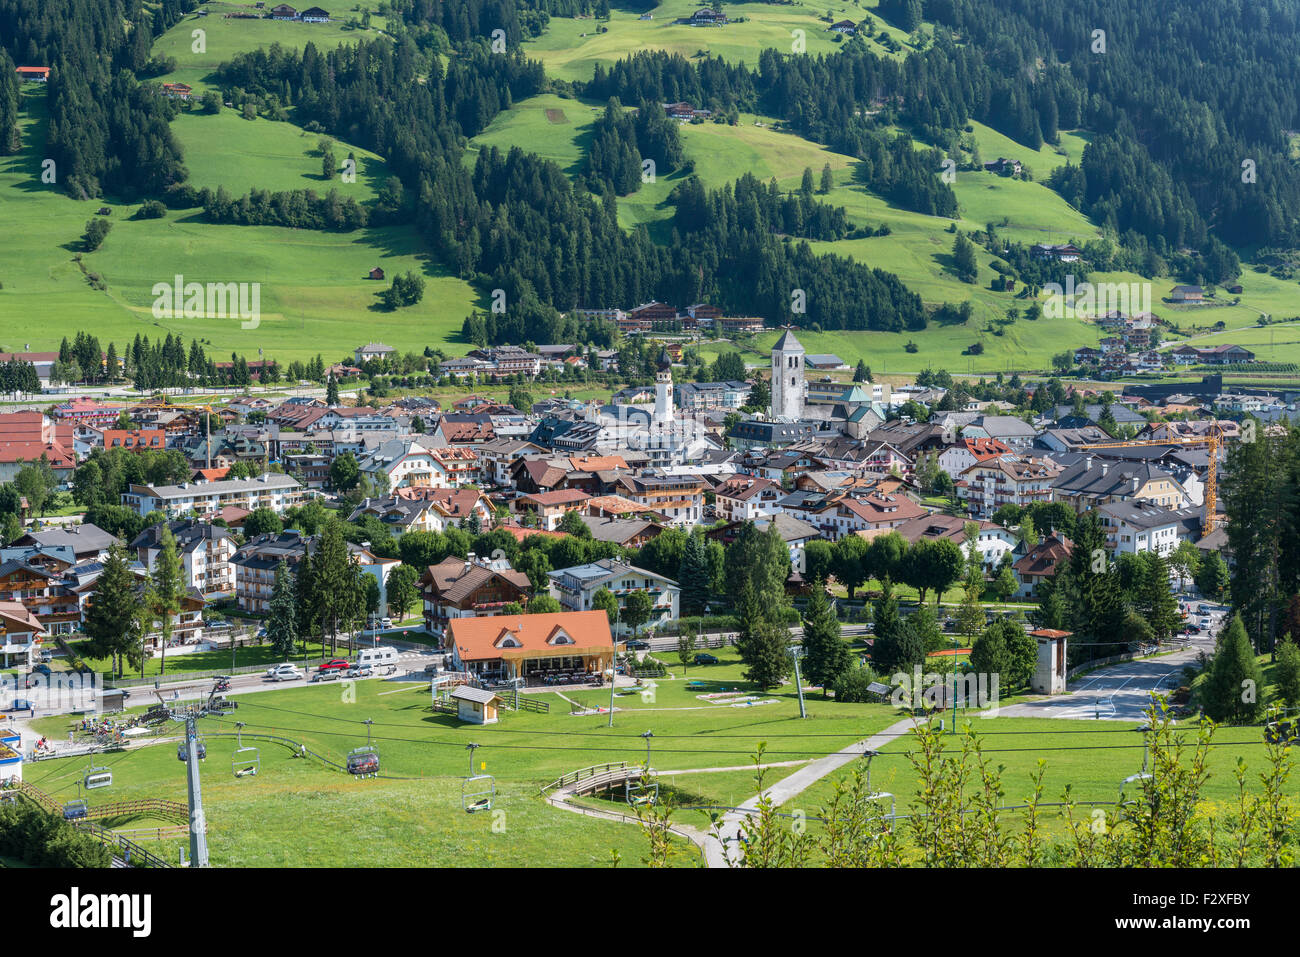 Innchen or San Candido, Dolomites, Trentino-Alto Adige, Province of South Tyrol, Italy - Stock Image